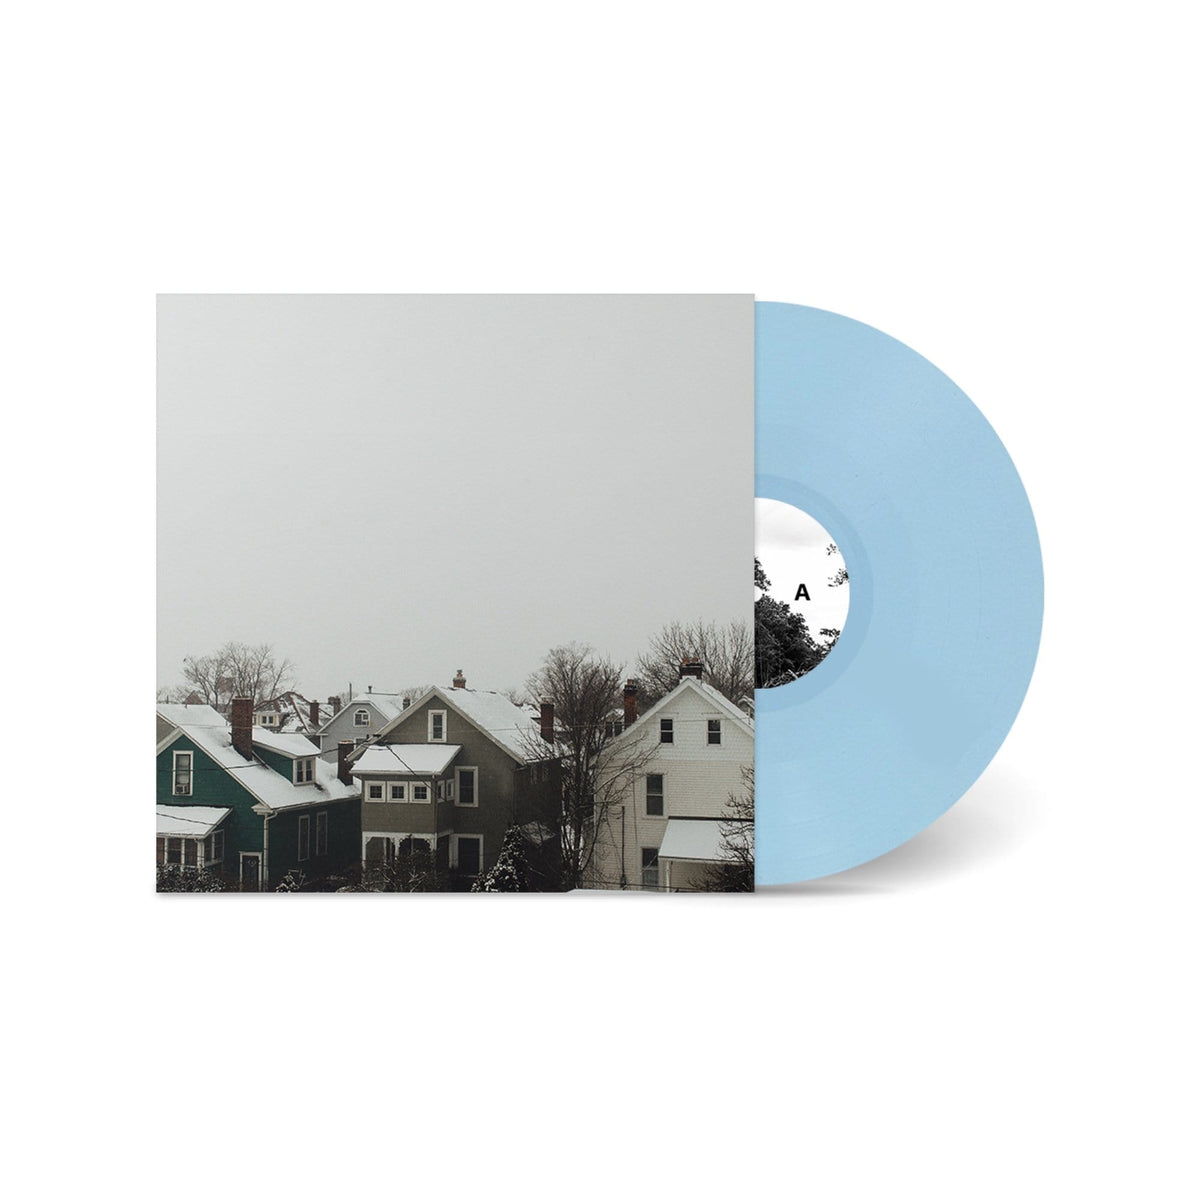 "The Flenser Vinyl Baby Blue Vinyl Planning for Burial ""Below the House"" LP"